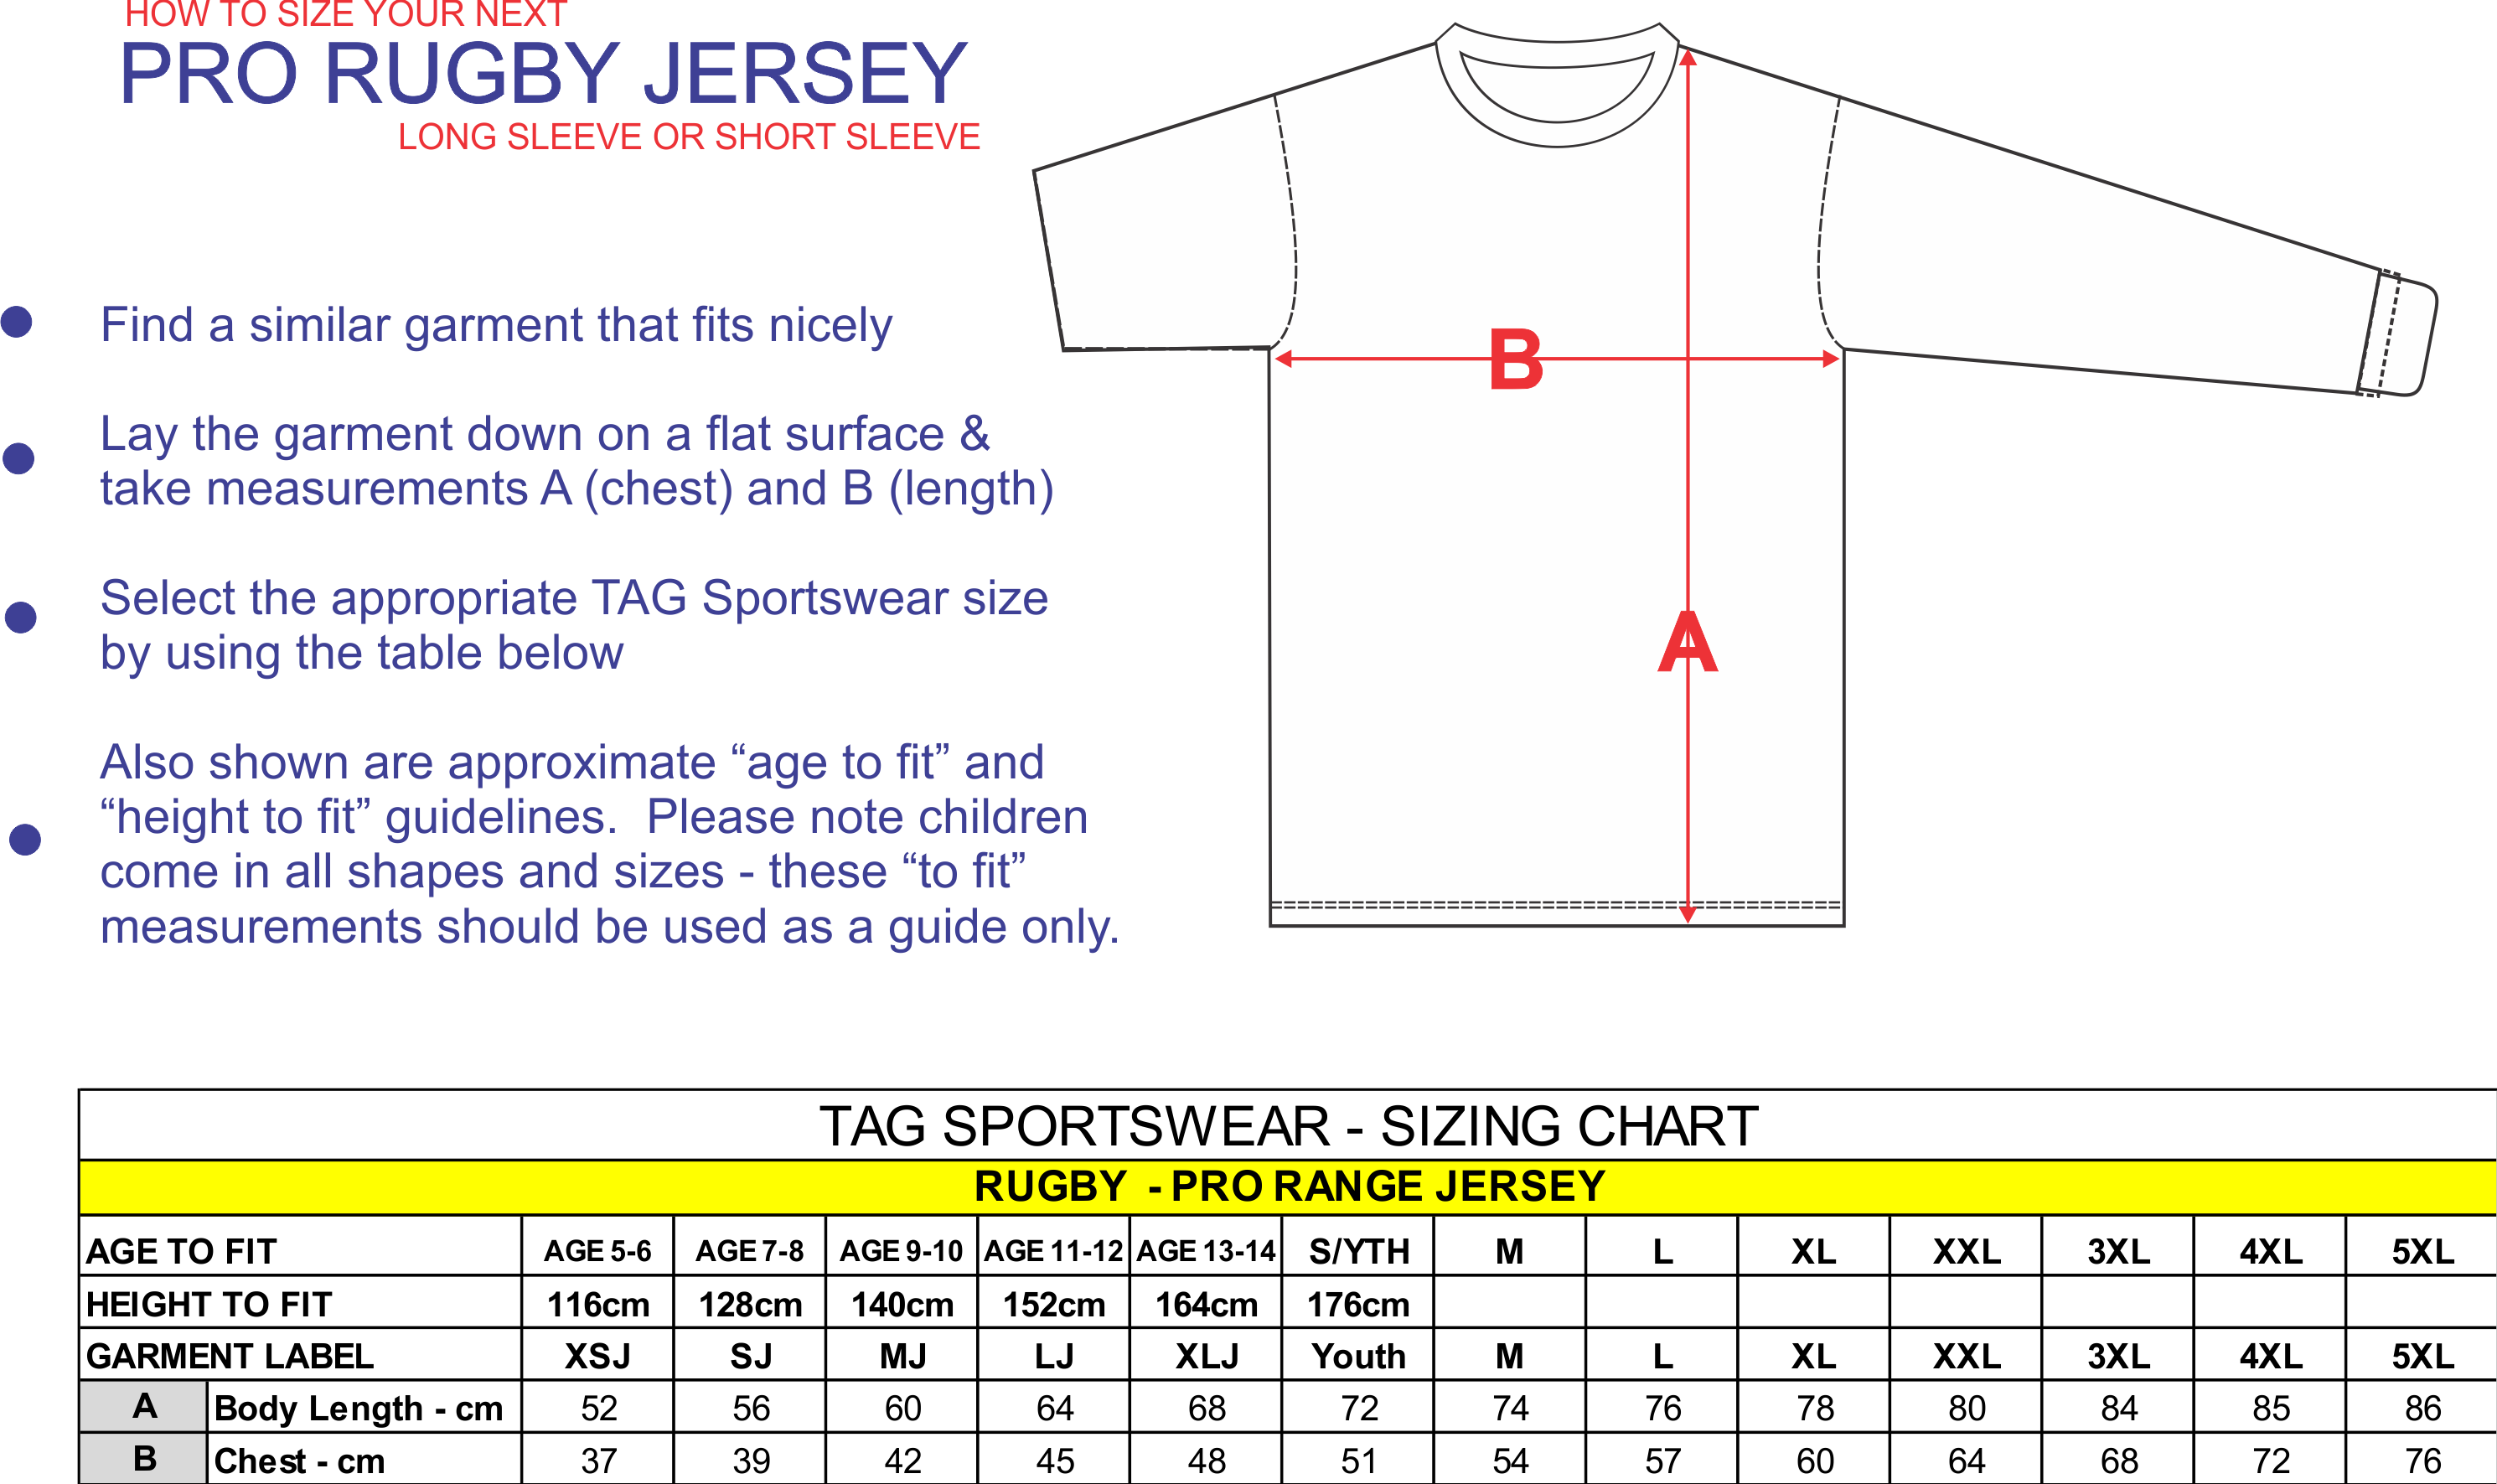 rugby-pro-range-jersey-sizing